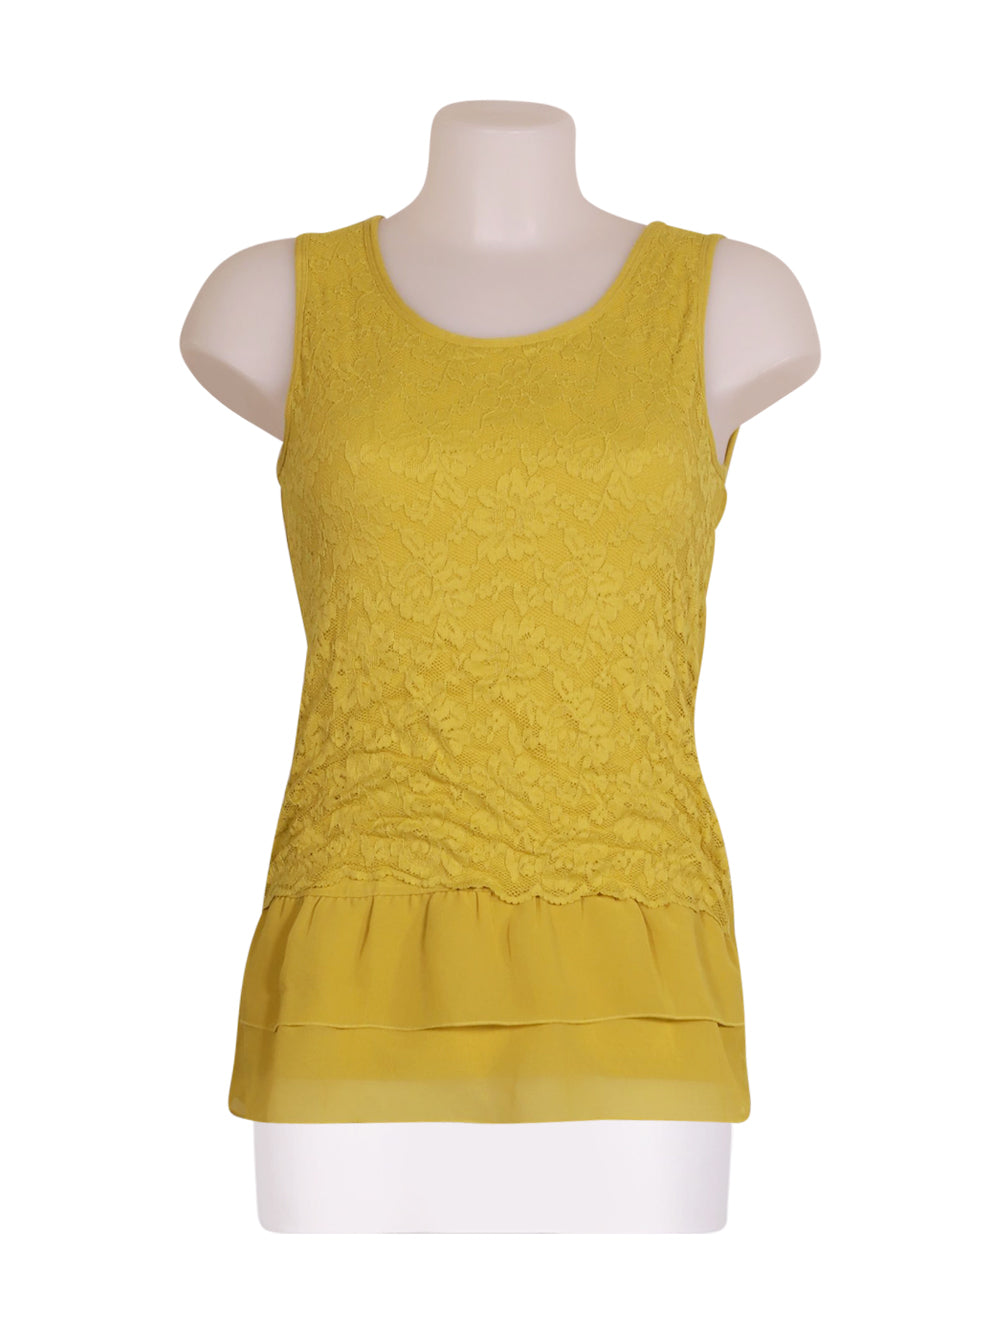 Front photo of Preloved Intimissimi Yellow Woman's sleeveless top - size 8/S